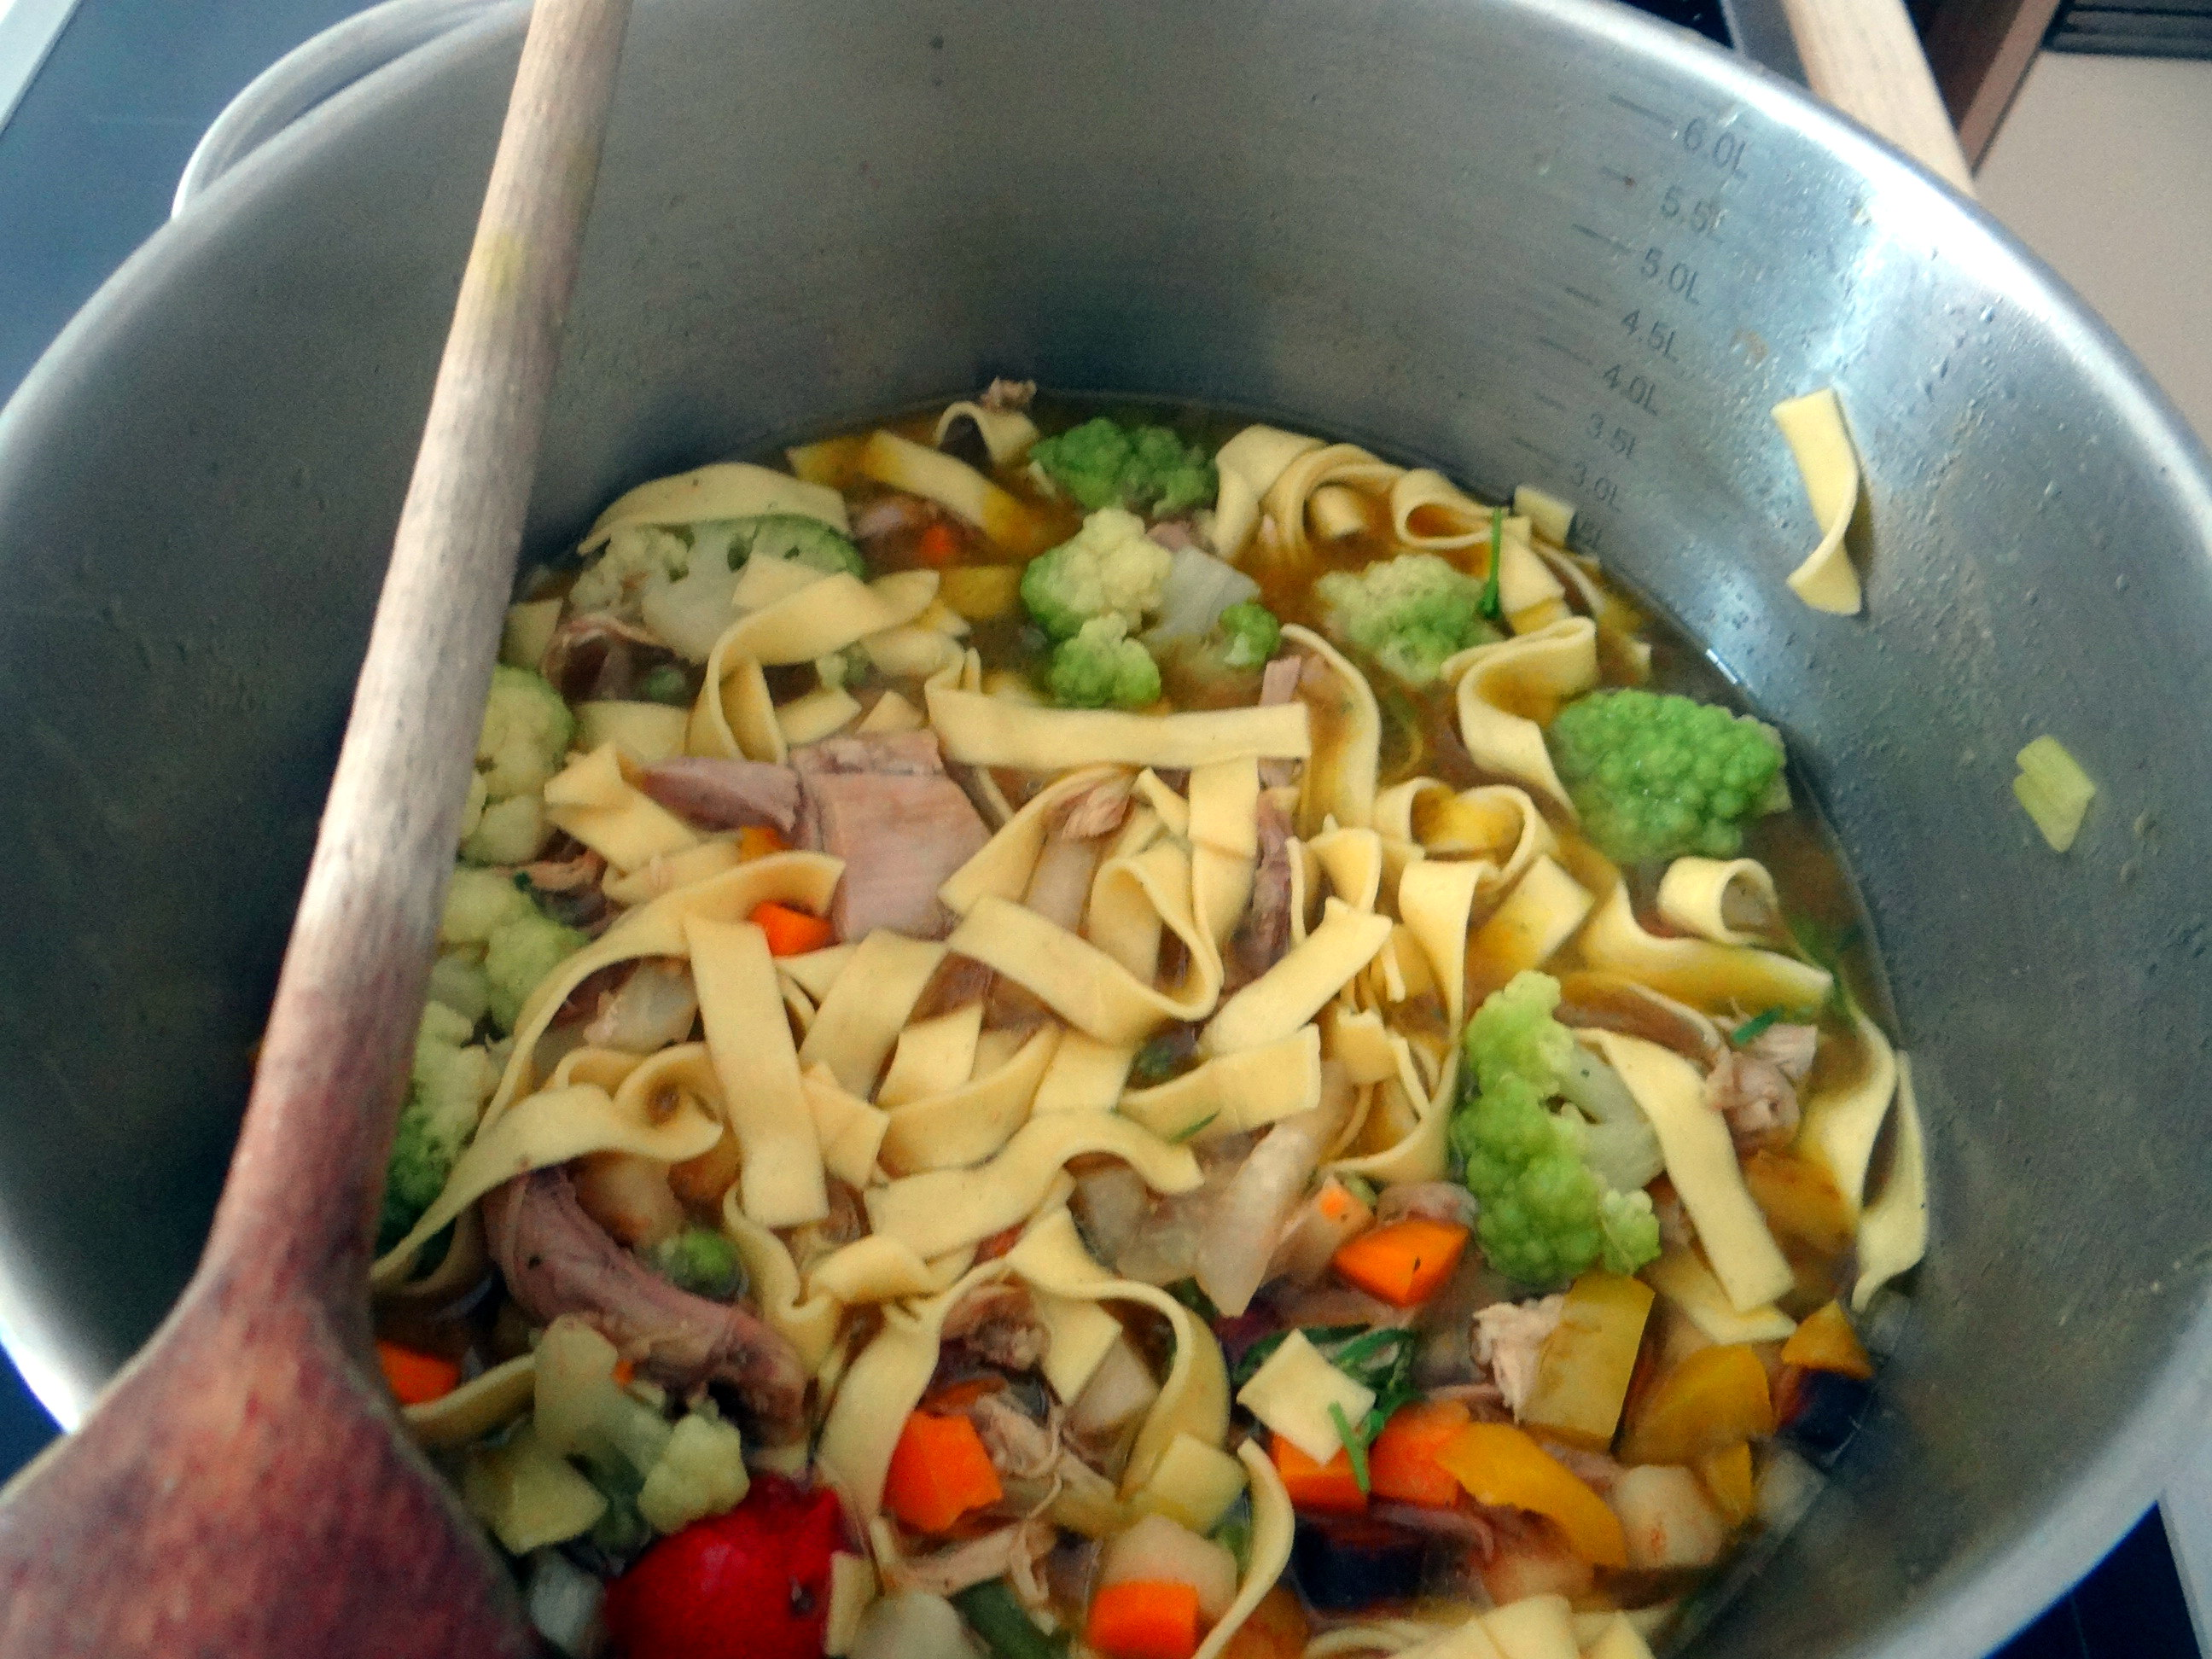 Nudelsuppe-4..7 (11)